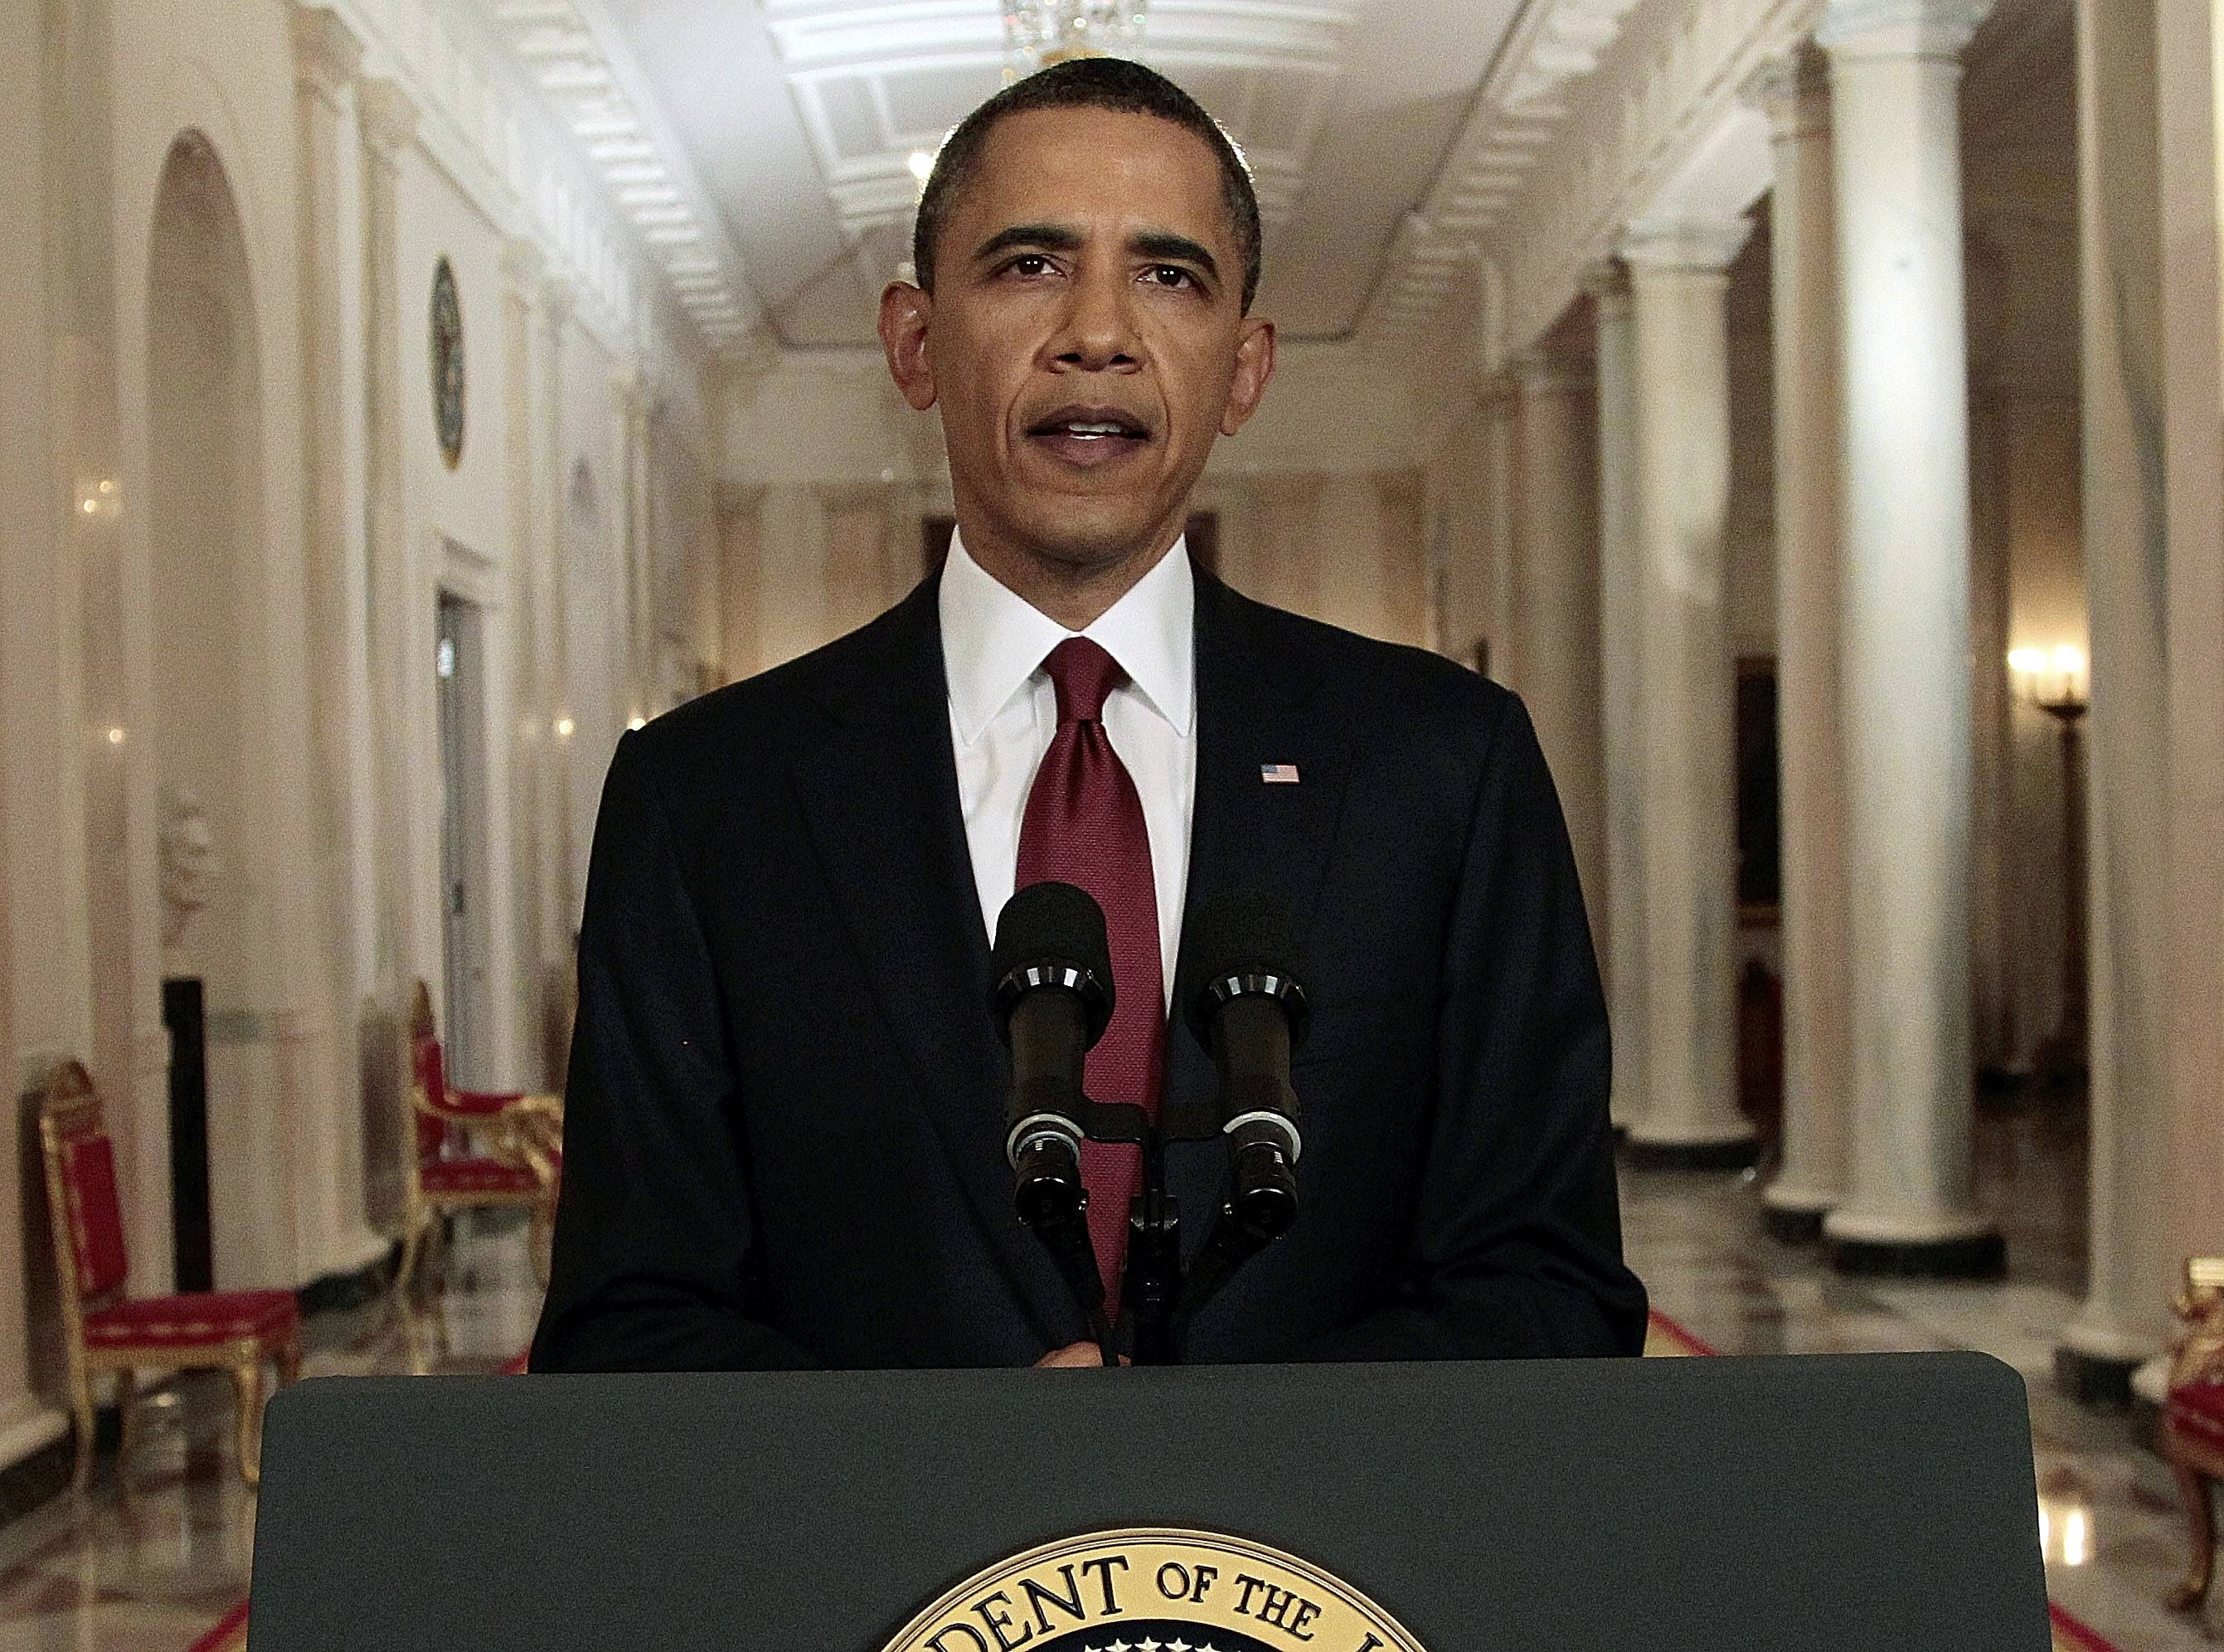 President Barack Obama announced Sunday night that a U.S. military operation resulted in the death of terrorist mastermind Osama bin Laden.